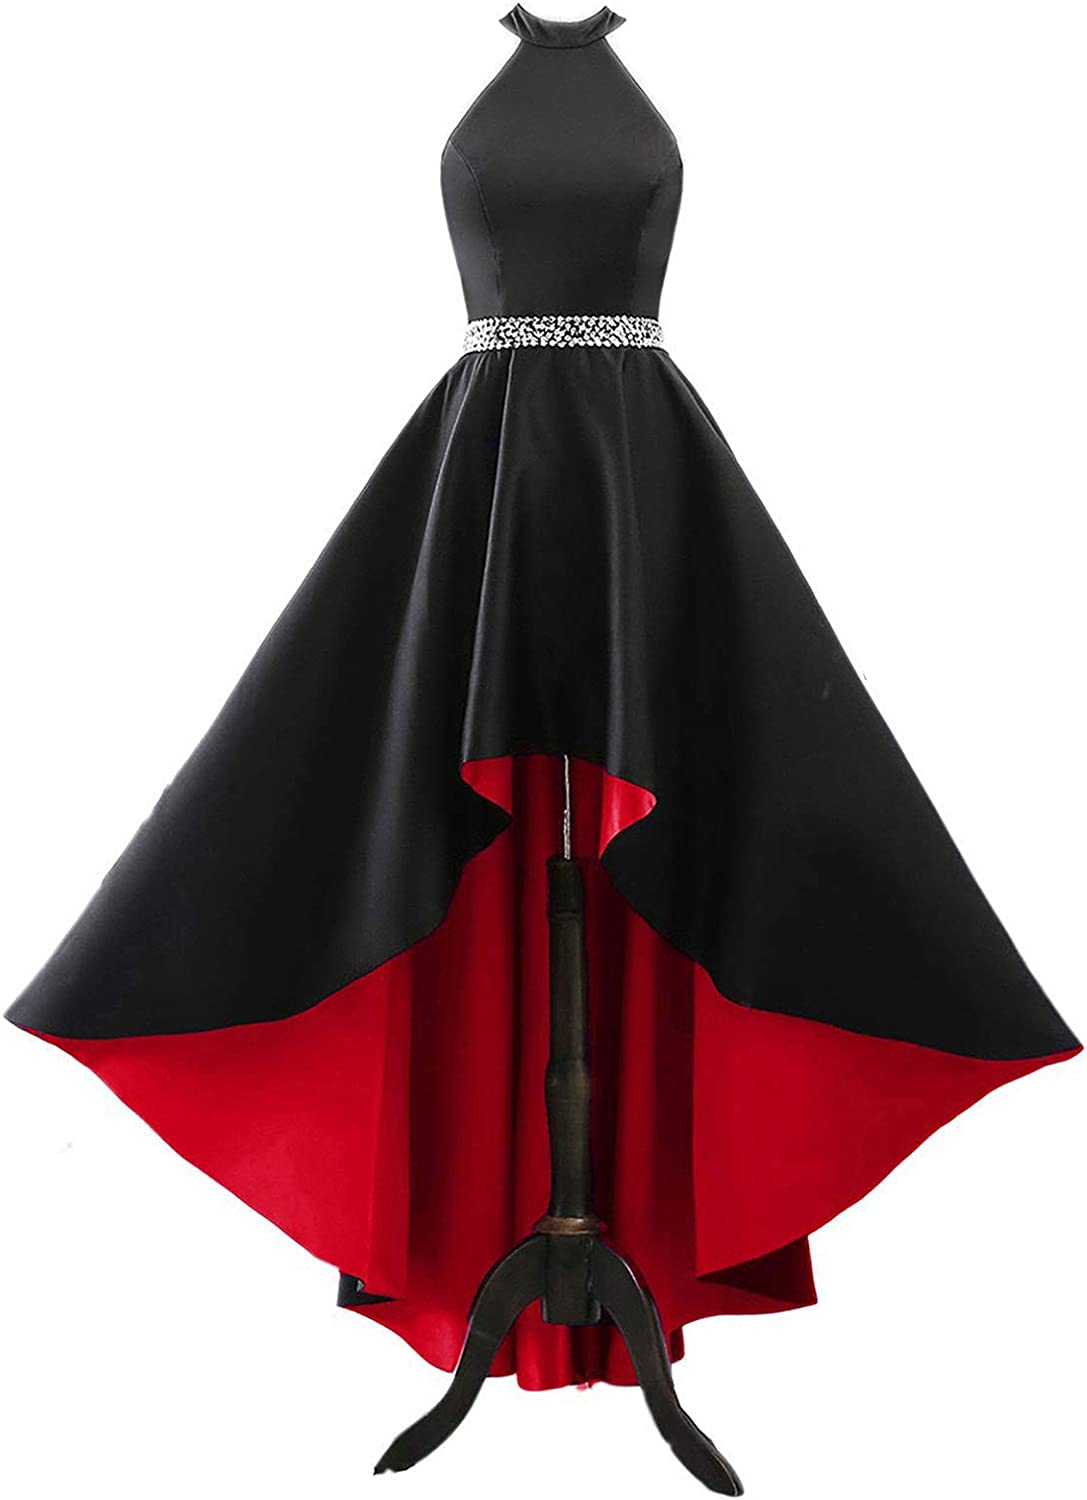 Changuan Halter High Low Evening Party Dress Long Satin Homecoming Prom Formal Gowns